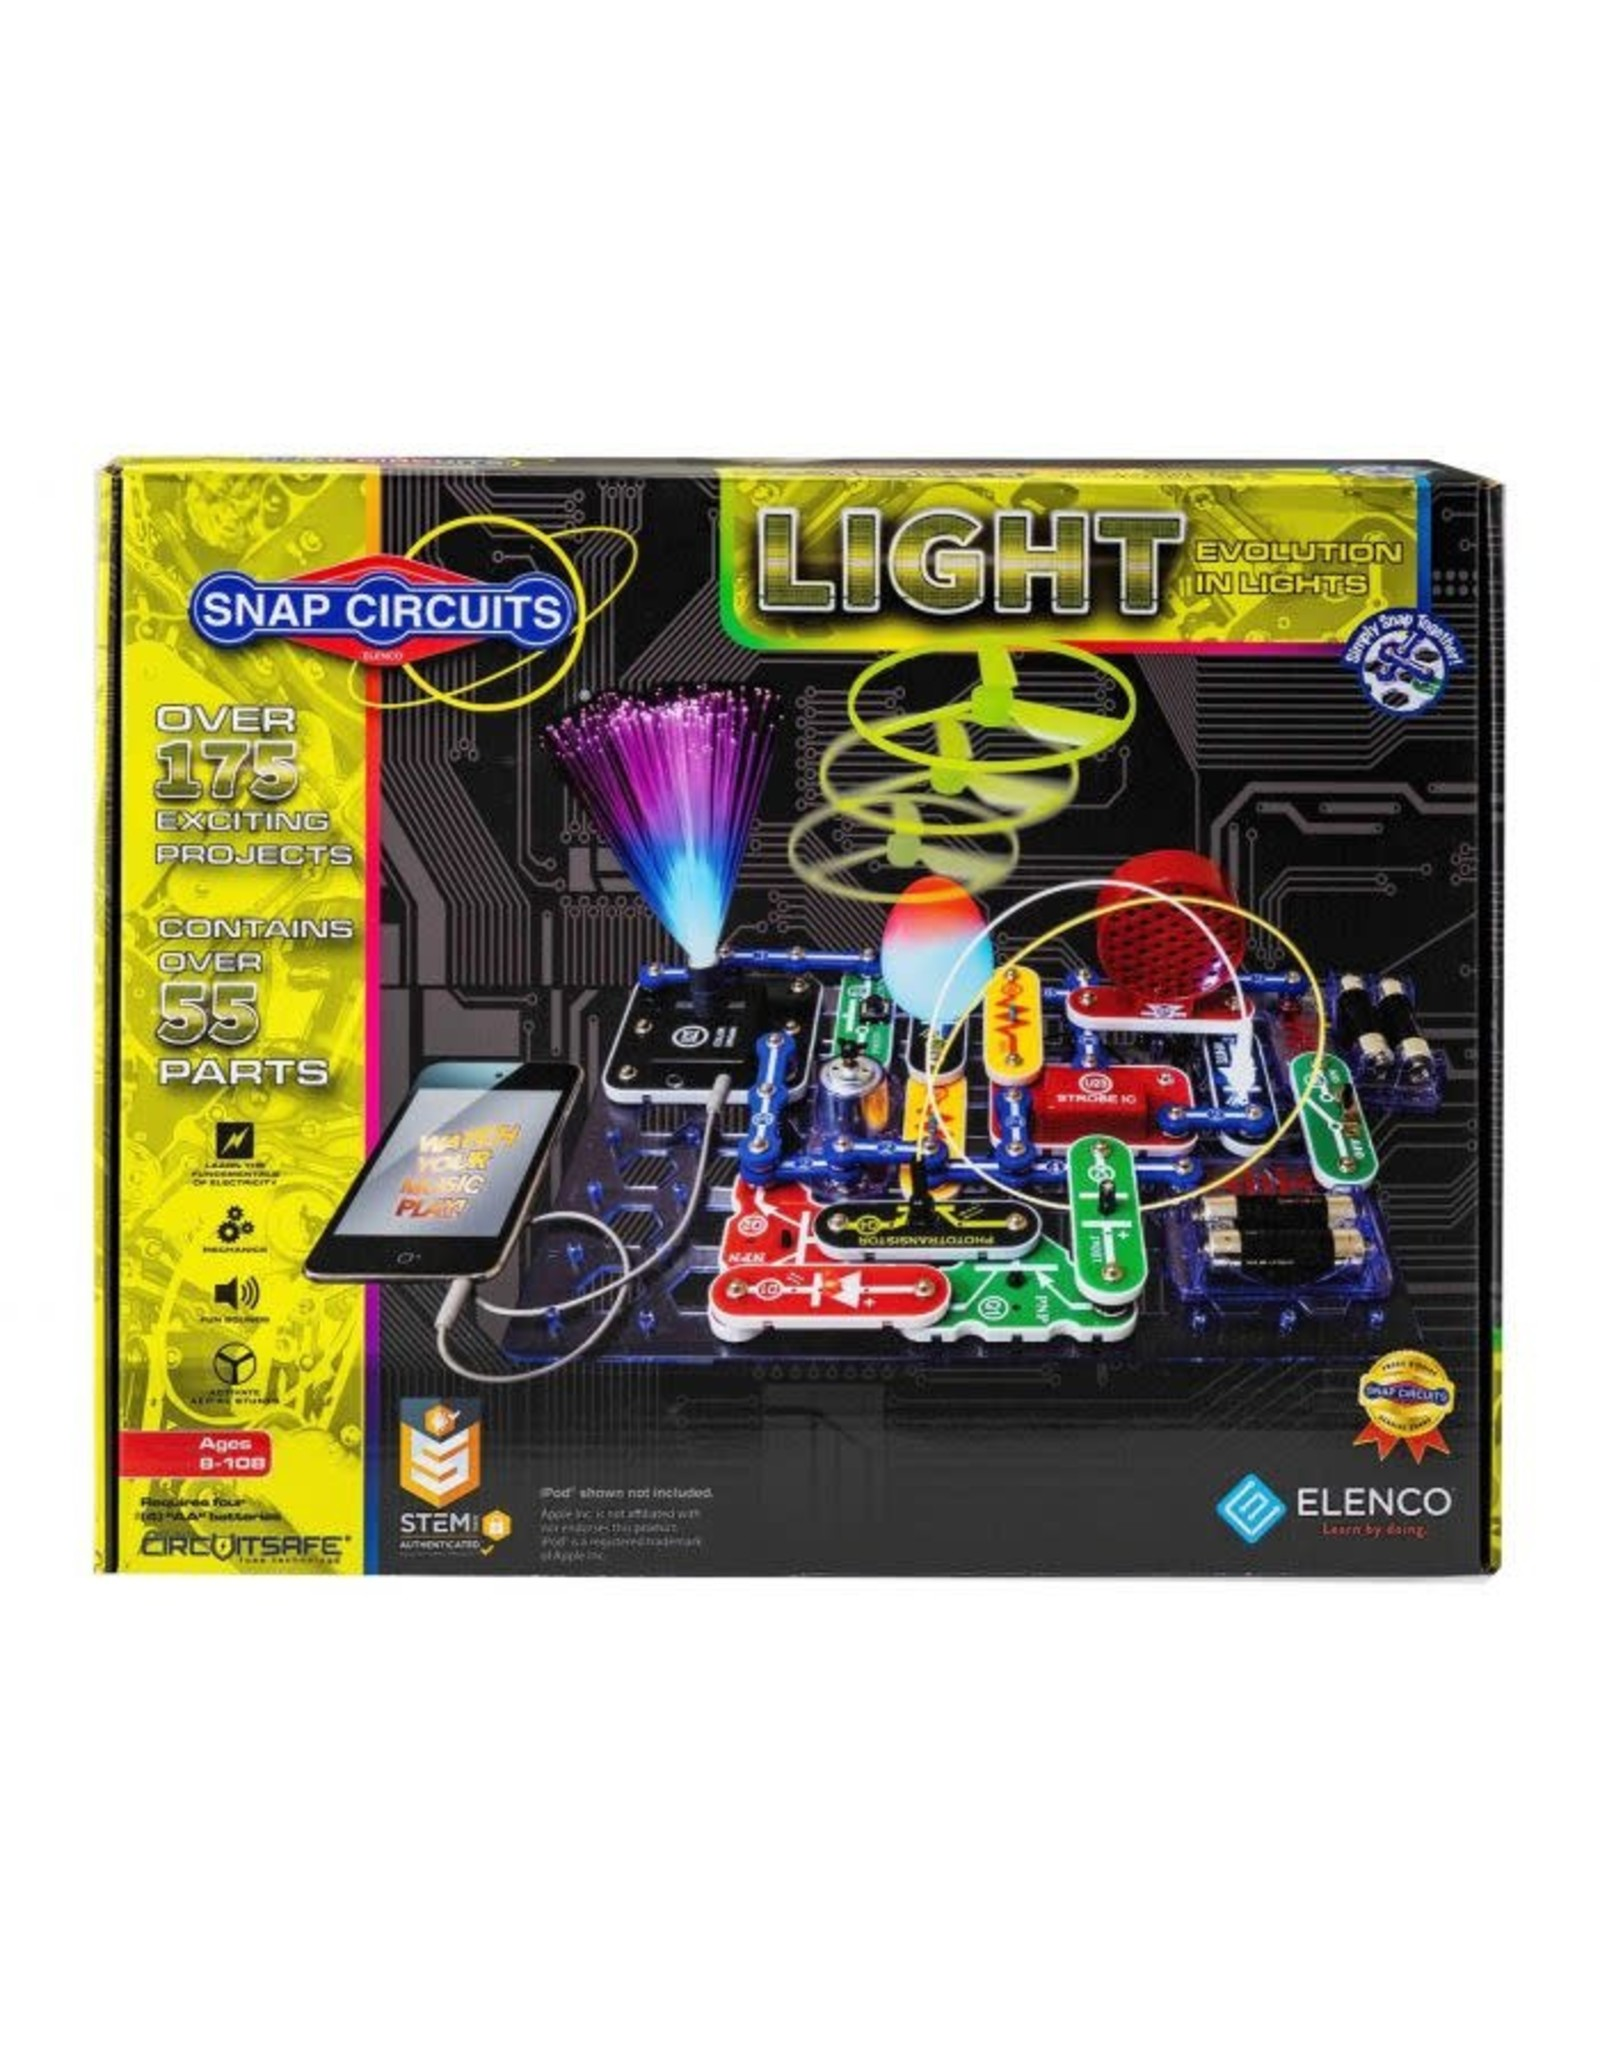 SNAP CIRCUITS Snap Circuits Light